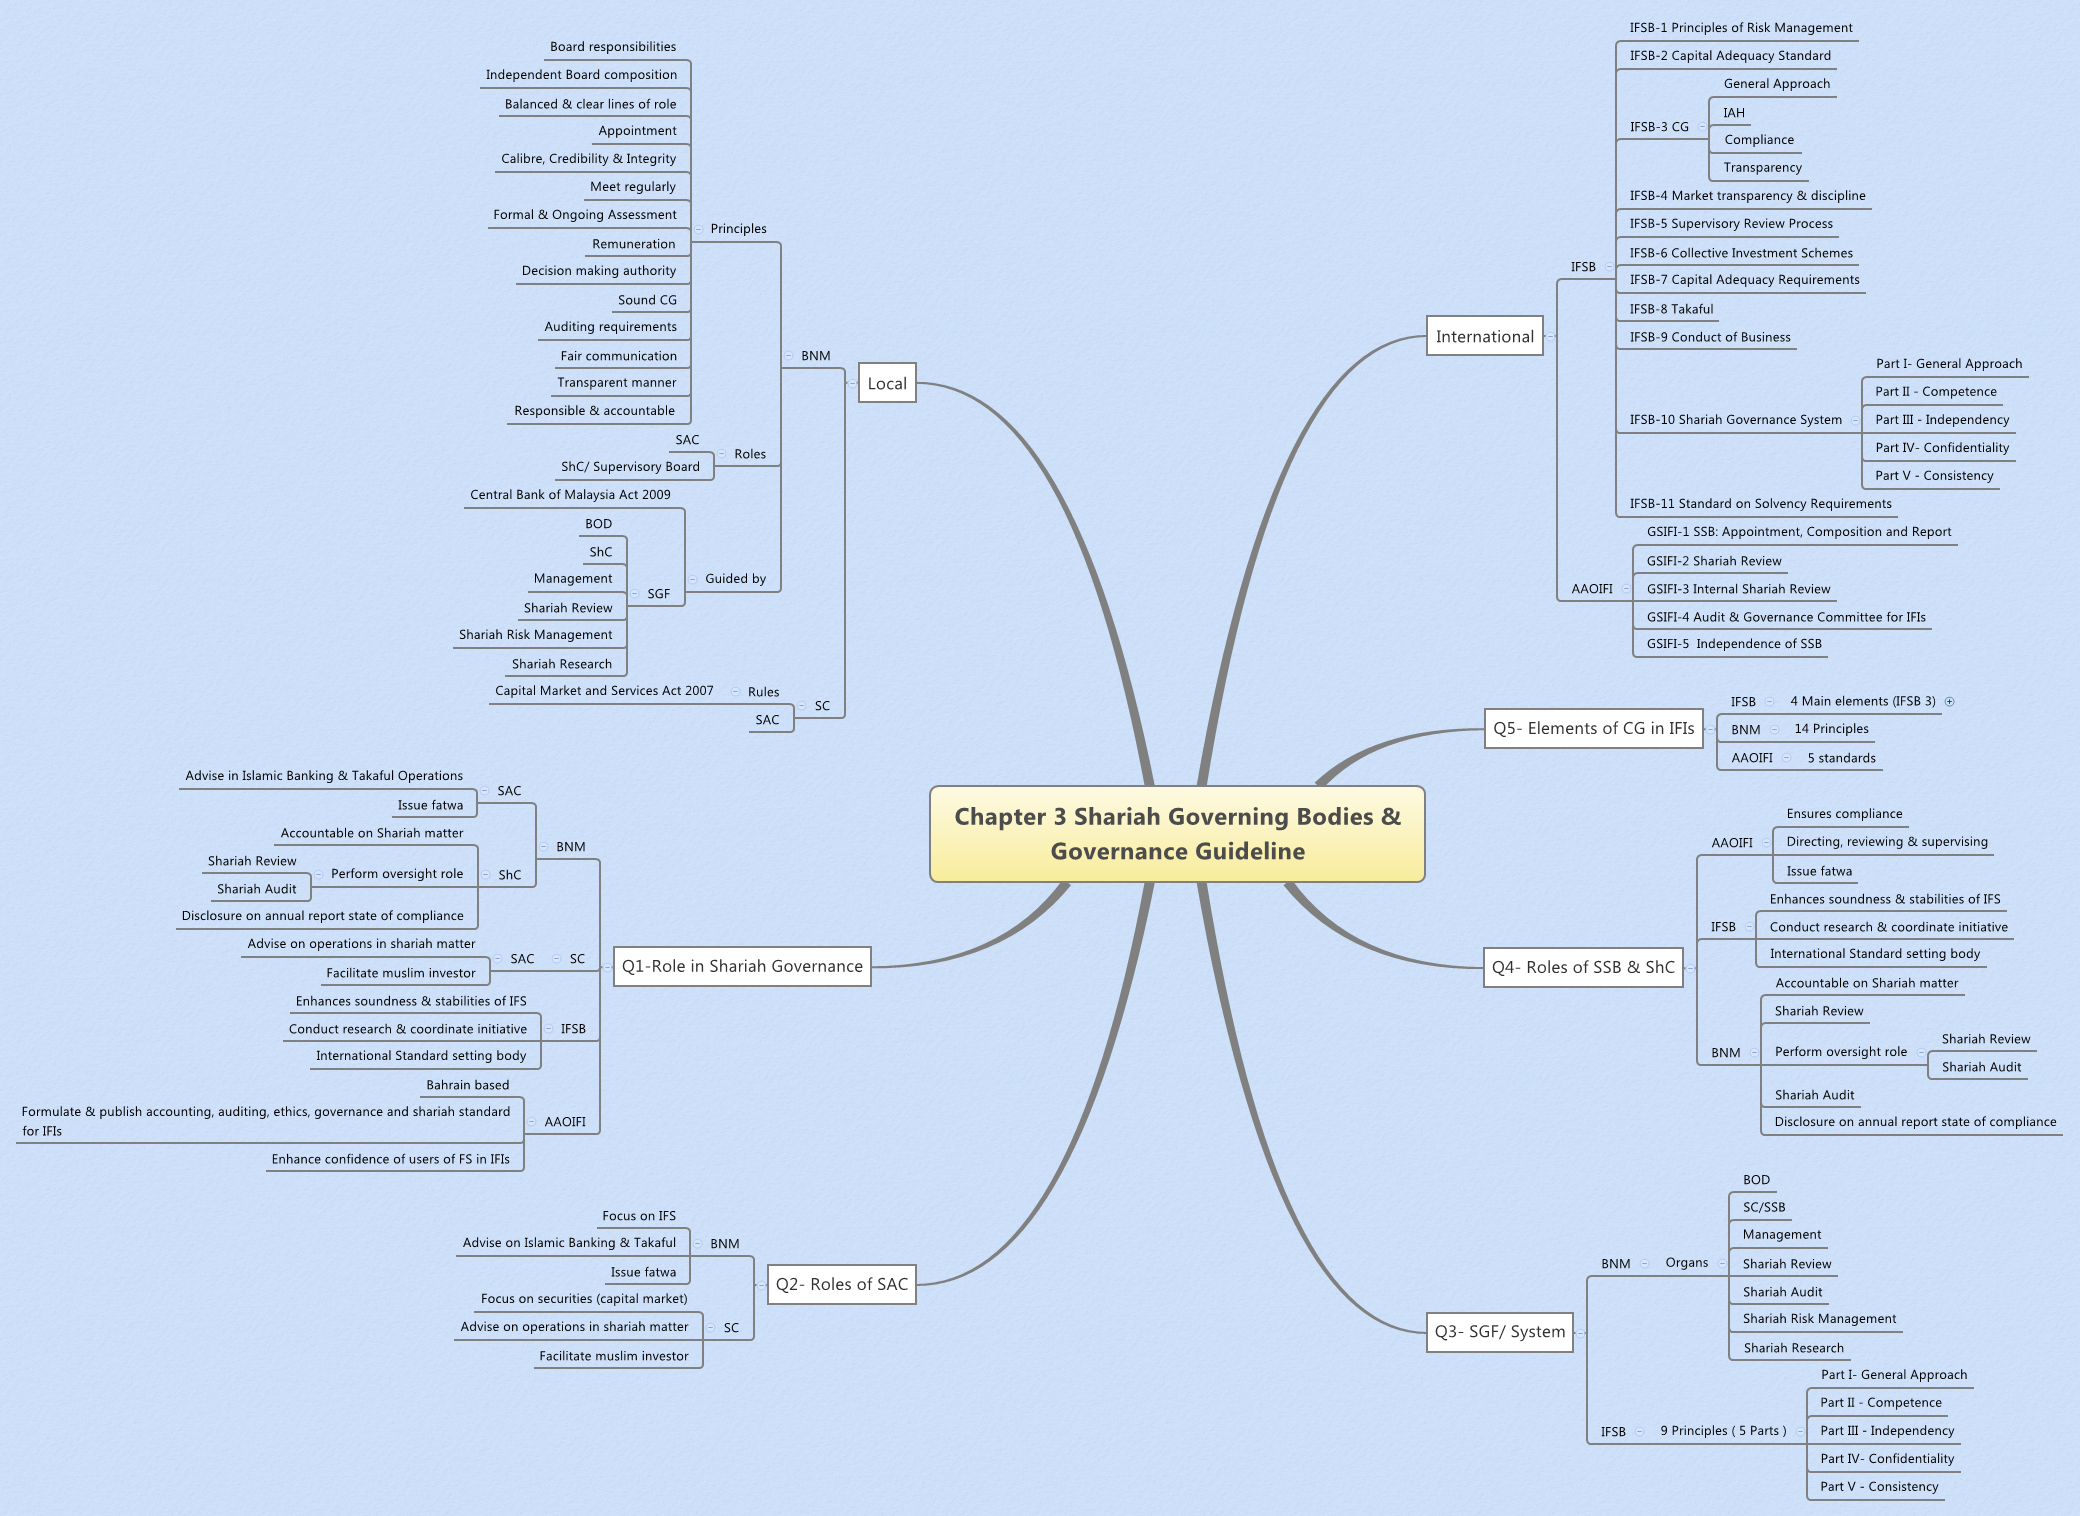 Chapter 3 Shariah Governing Bodies & Governance Guideline - XMind - Mind Mapping Software